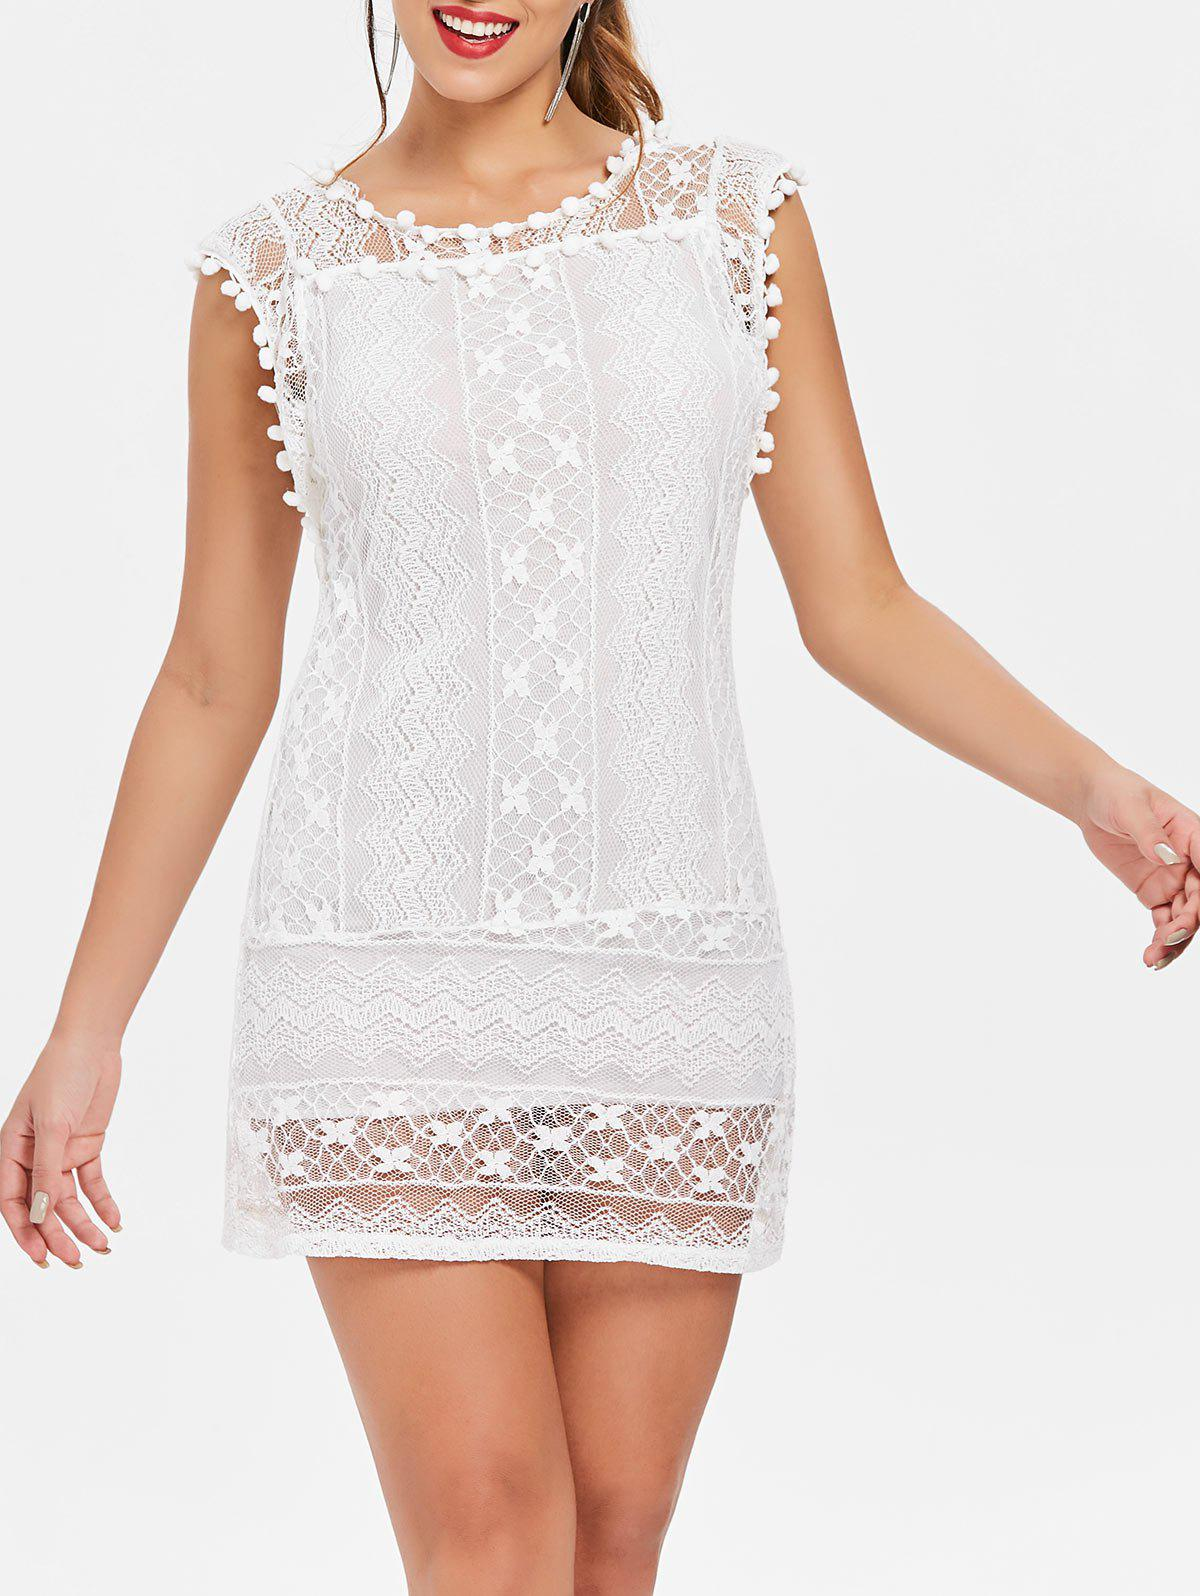 Online Scoop Collar Sleeveless See-Through Crochet Tunic